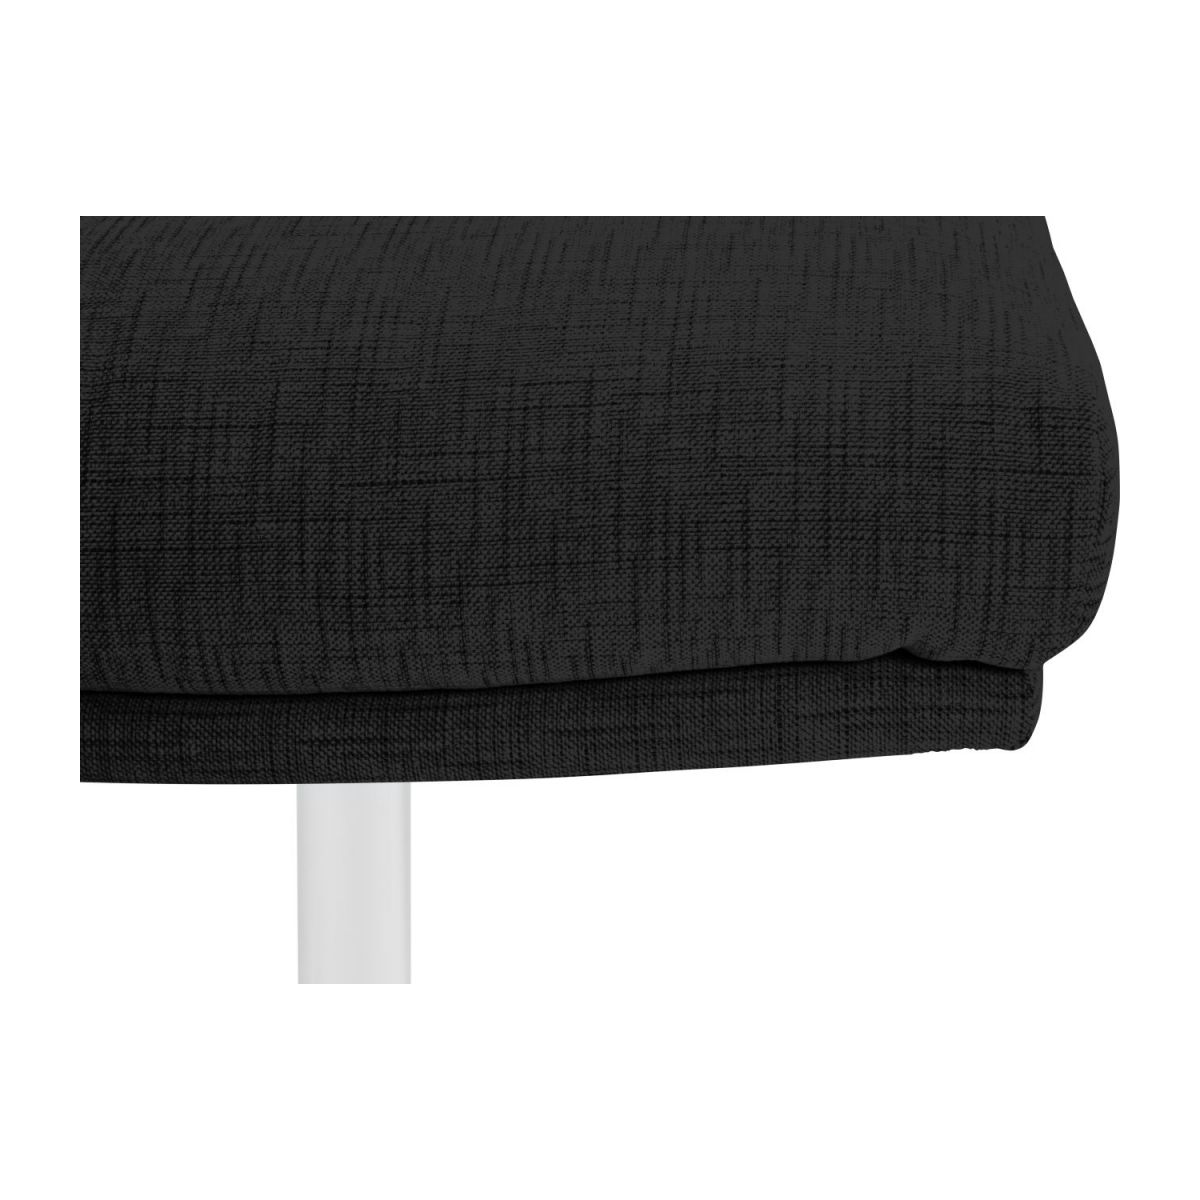 Footstool in Ancio fabric, nero with metal cross leg n°6